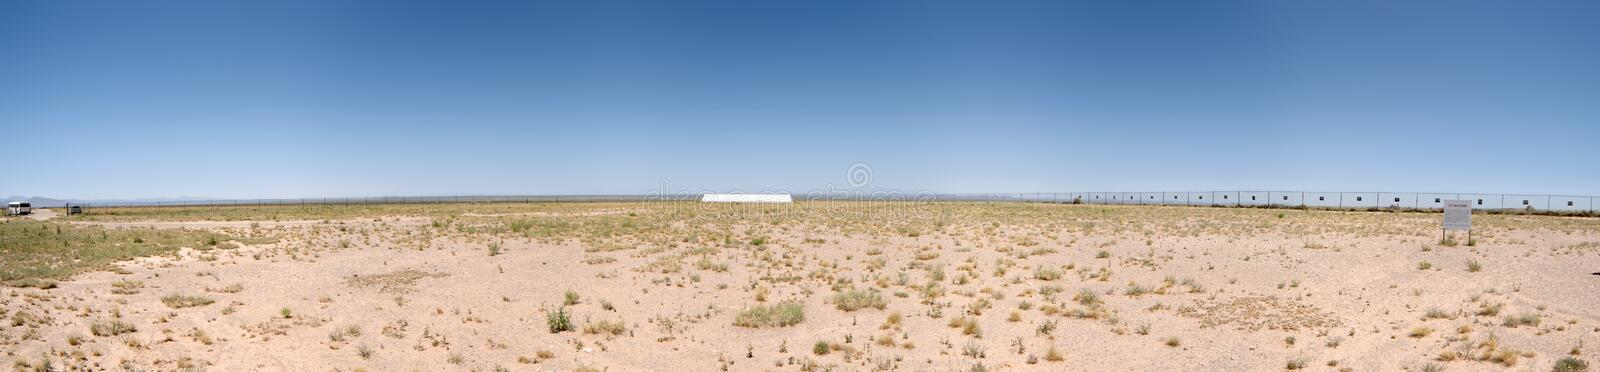 Trinity site stock photos